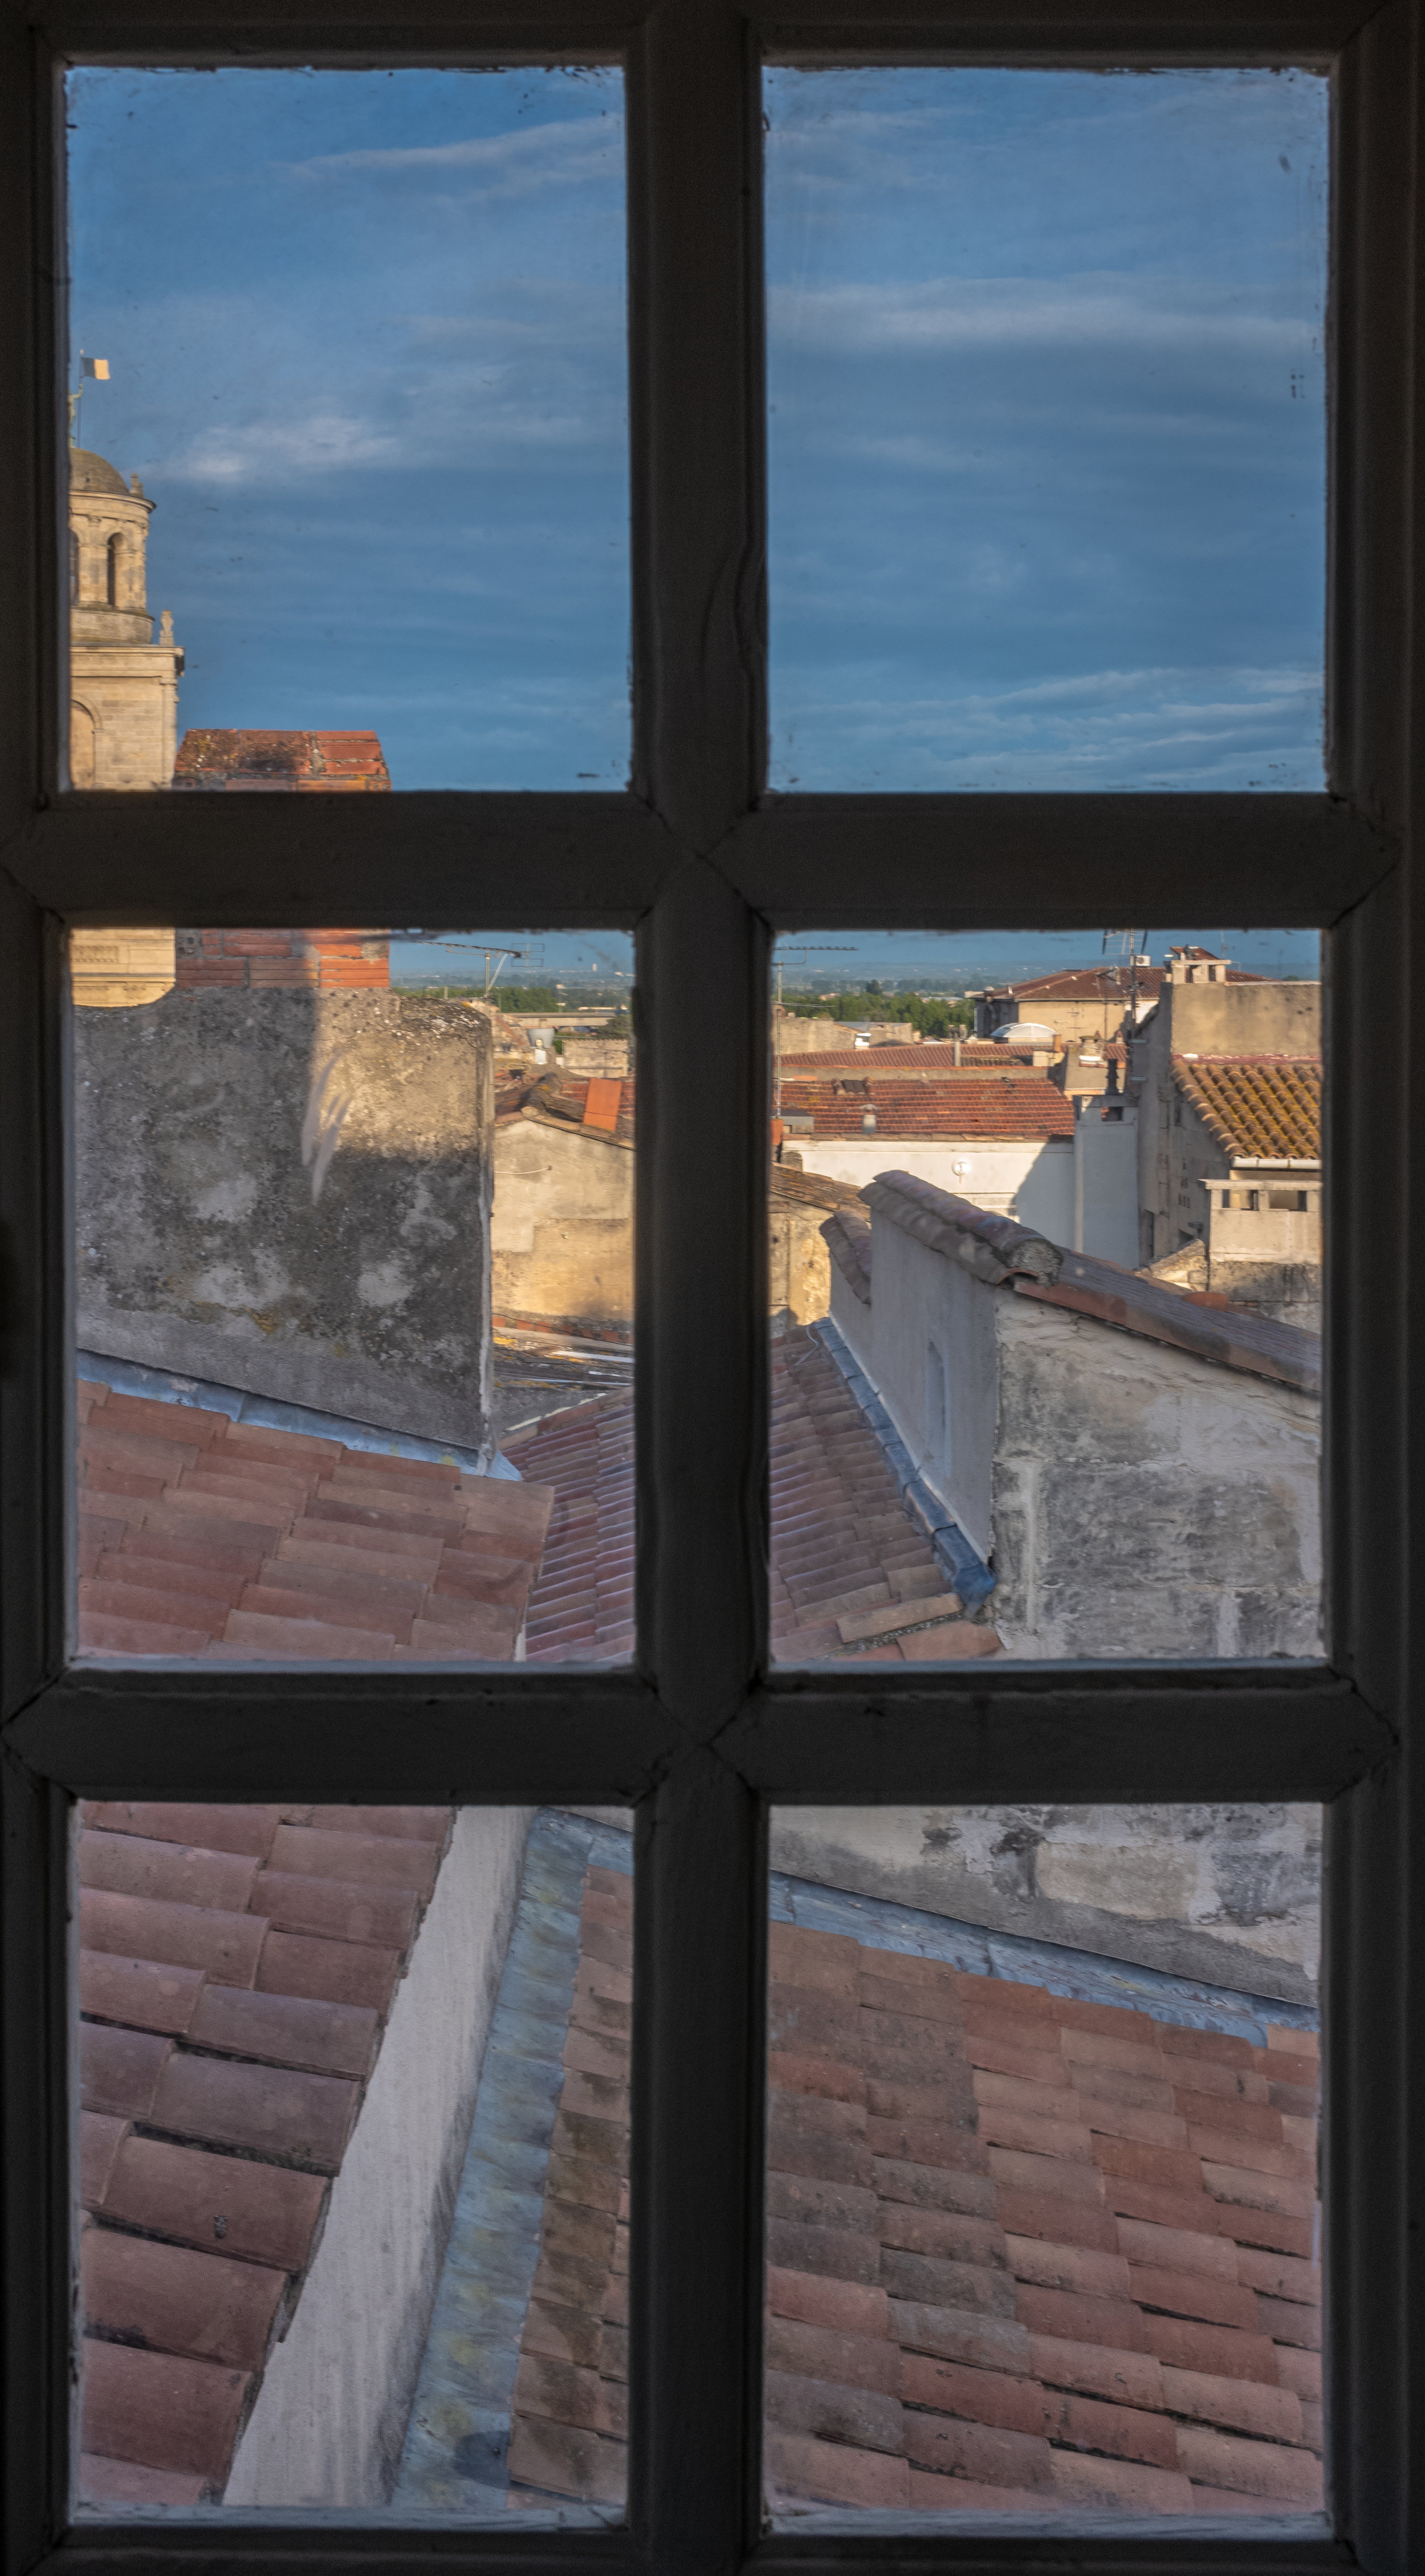 View of City from Galerie Huit, Arles, France